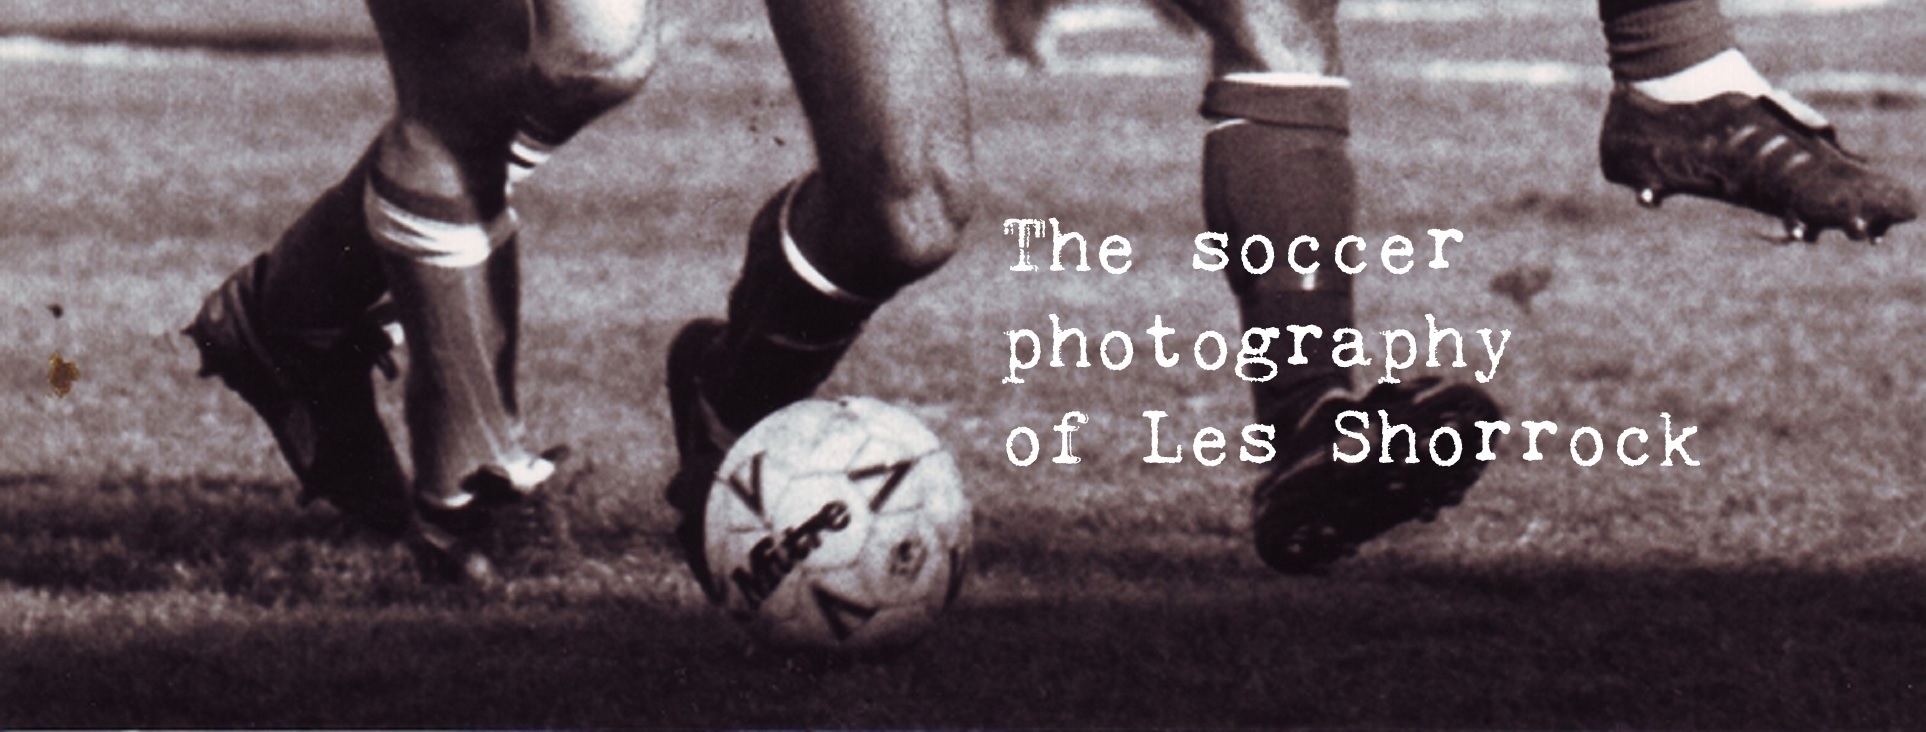 The soccer photography of Les Shorrock